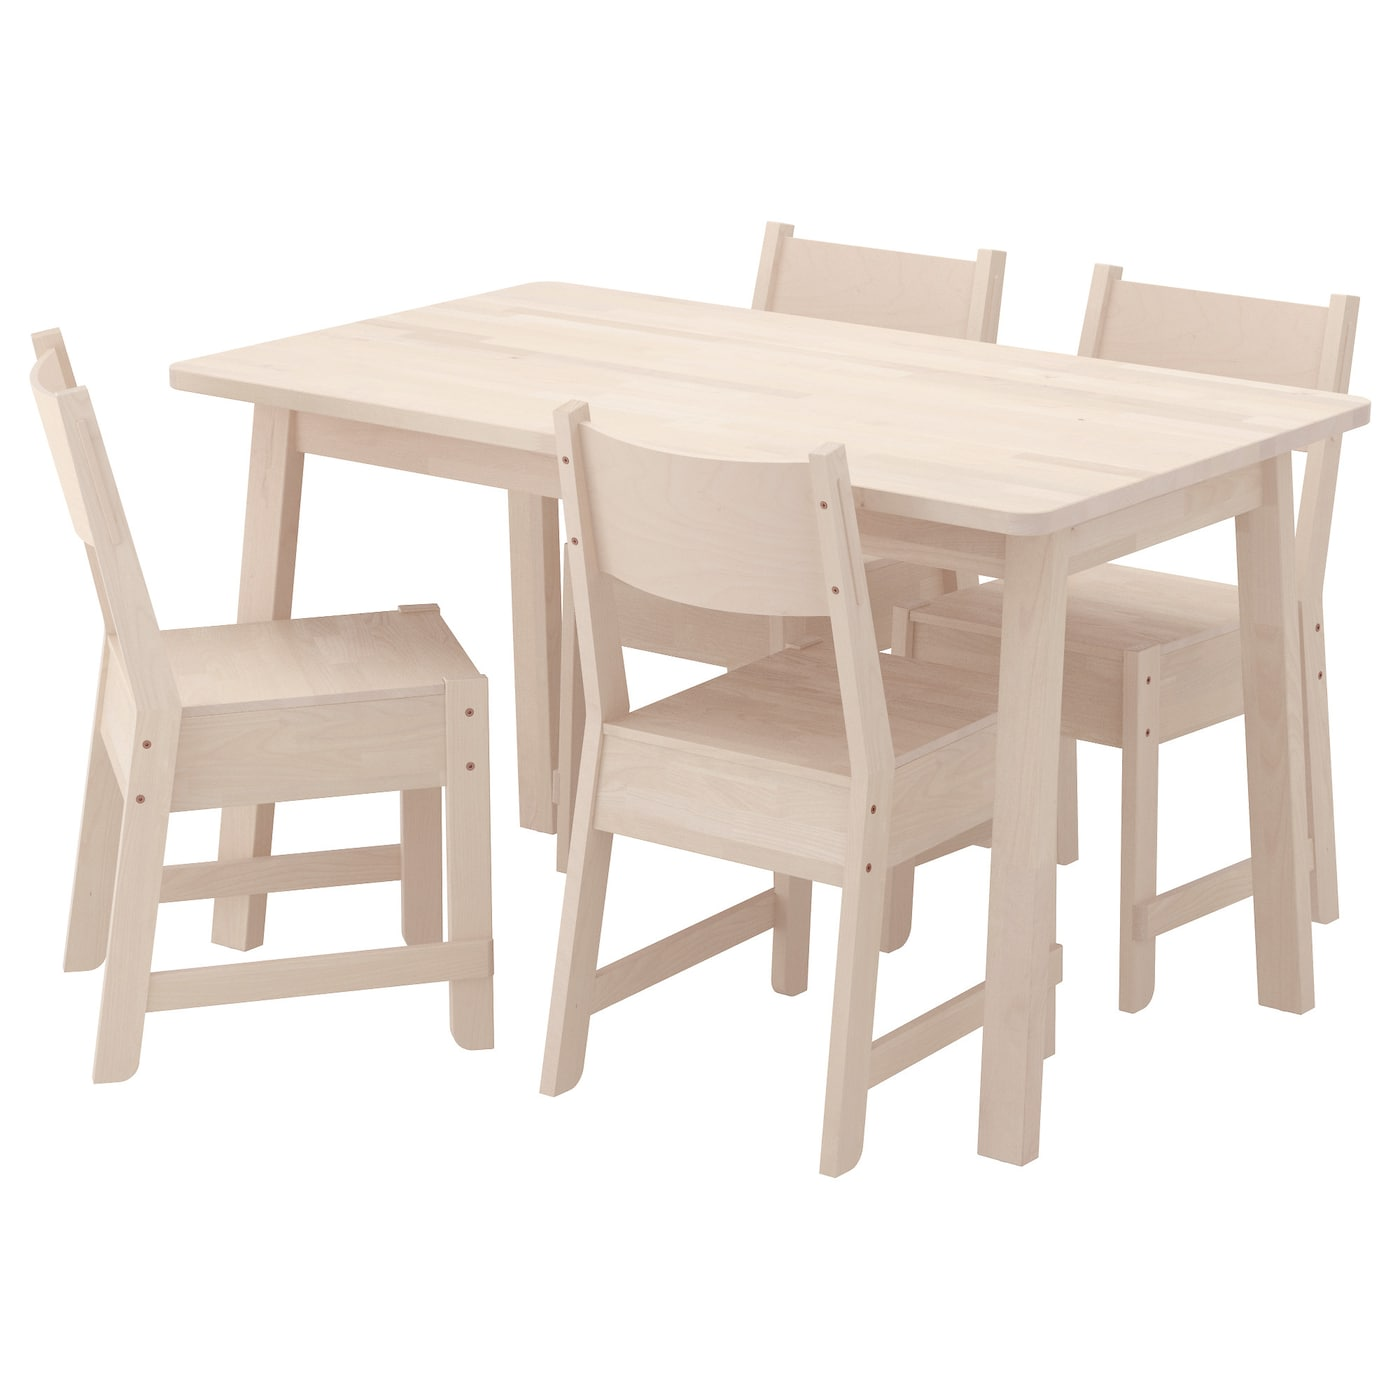 White Kitchen Tables And Chairs: NORRÅKER/NORRÅKER Table And 4 Chairs White Birch/white